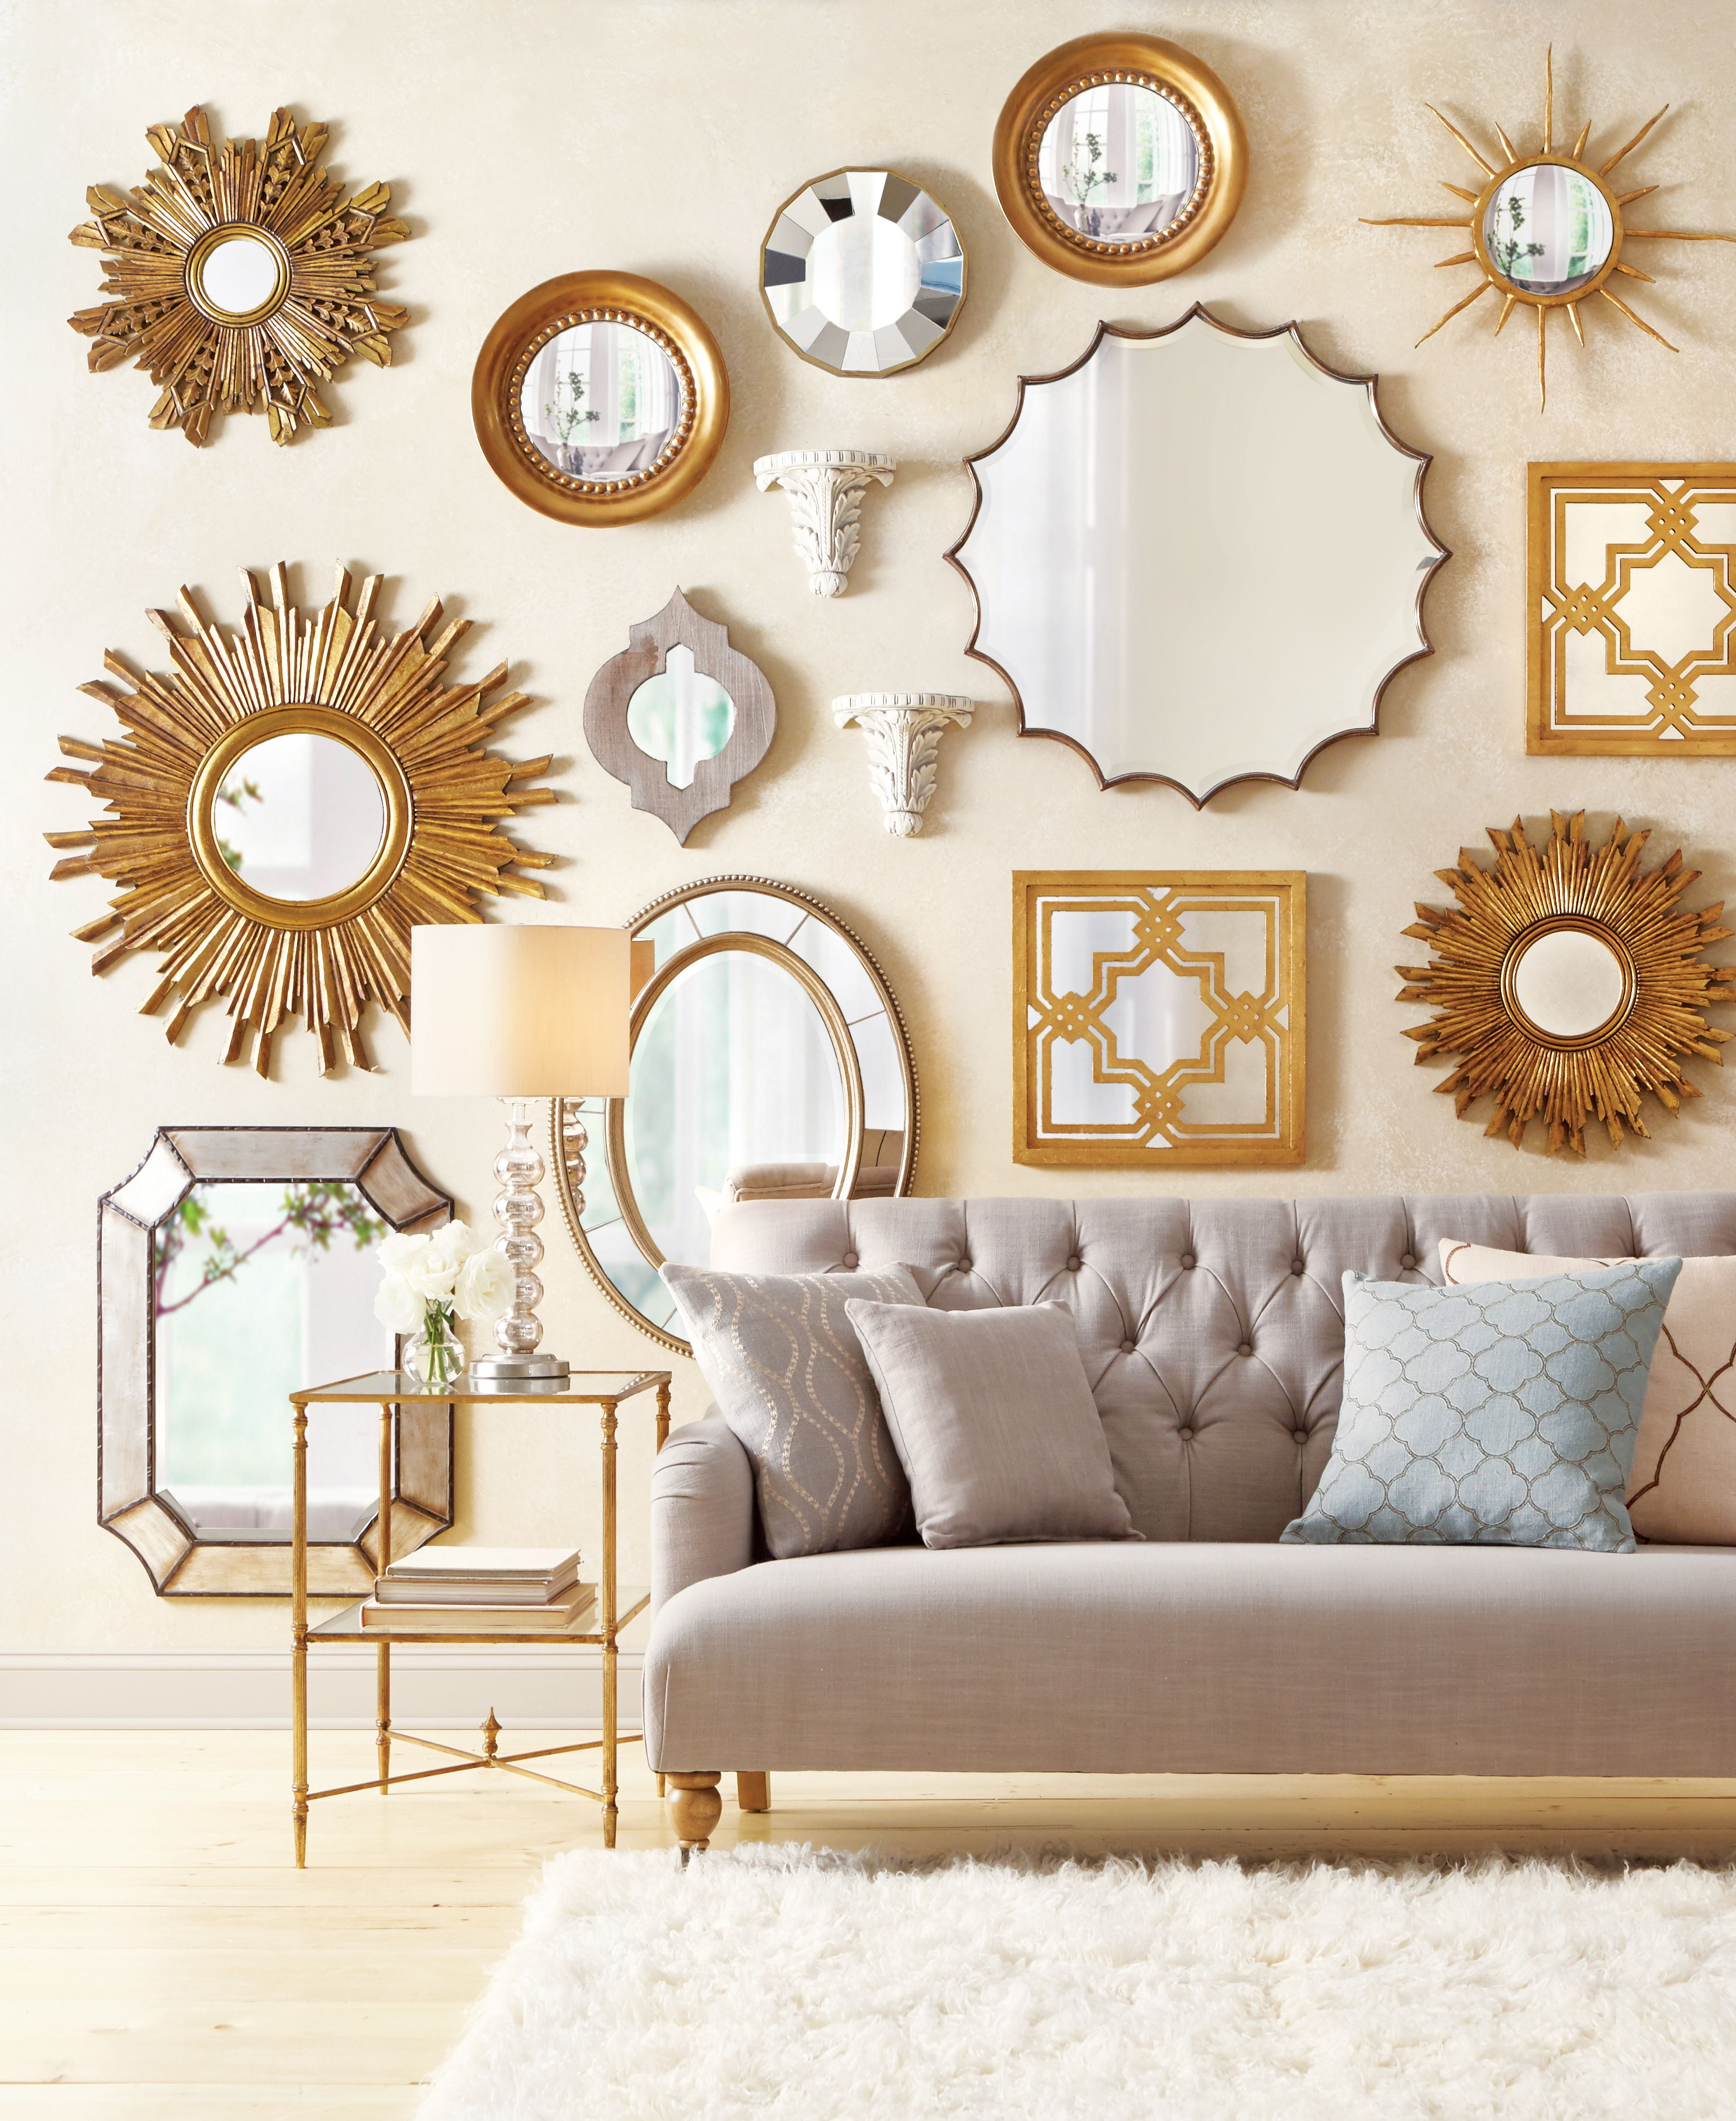 Mirrors Make A Wall Stand Out So Well Love This Gallery